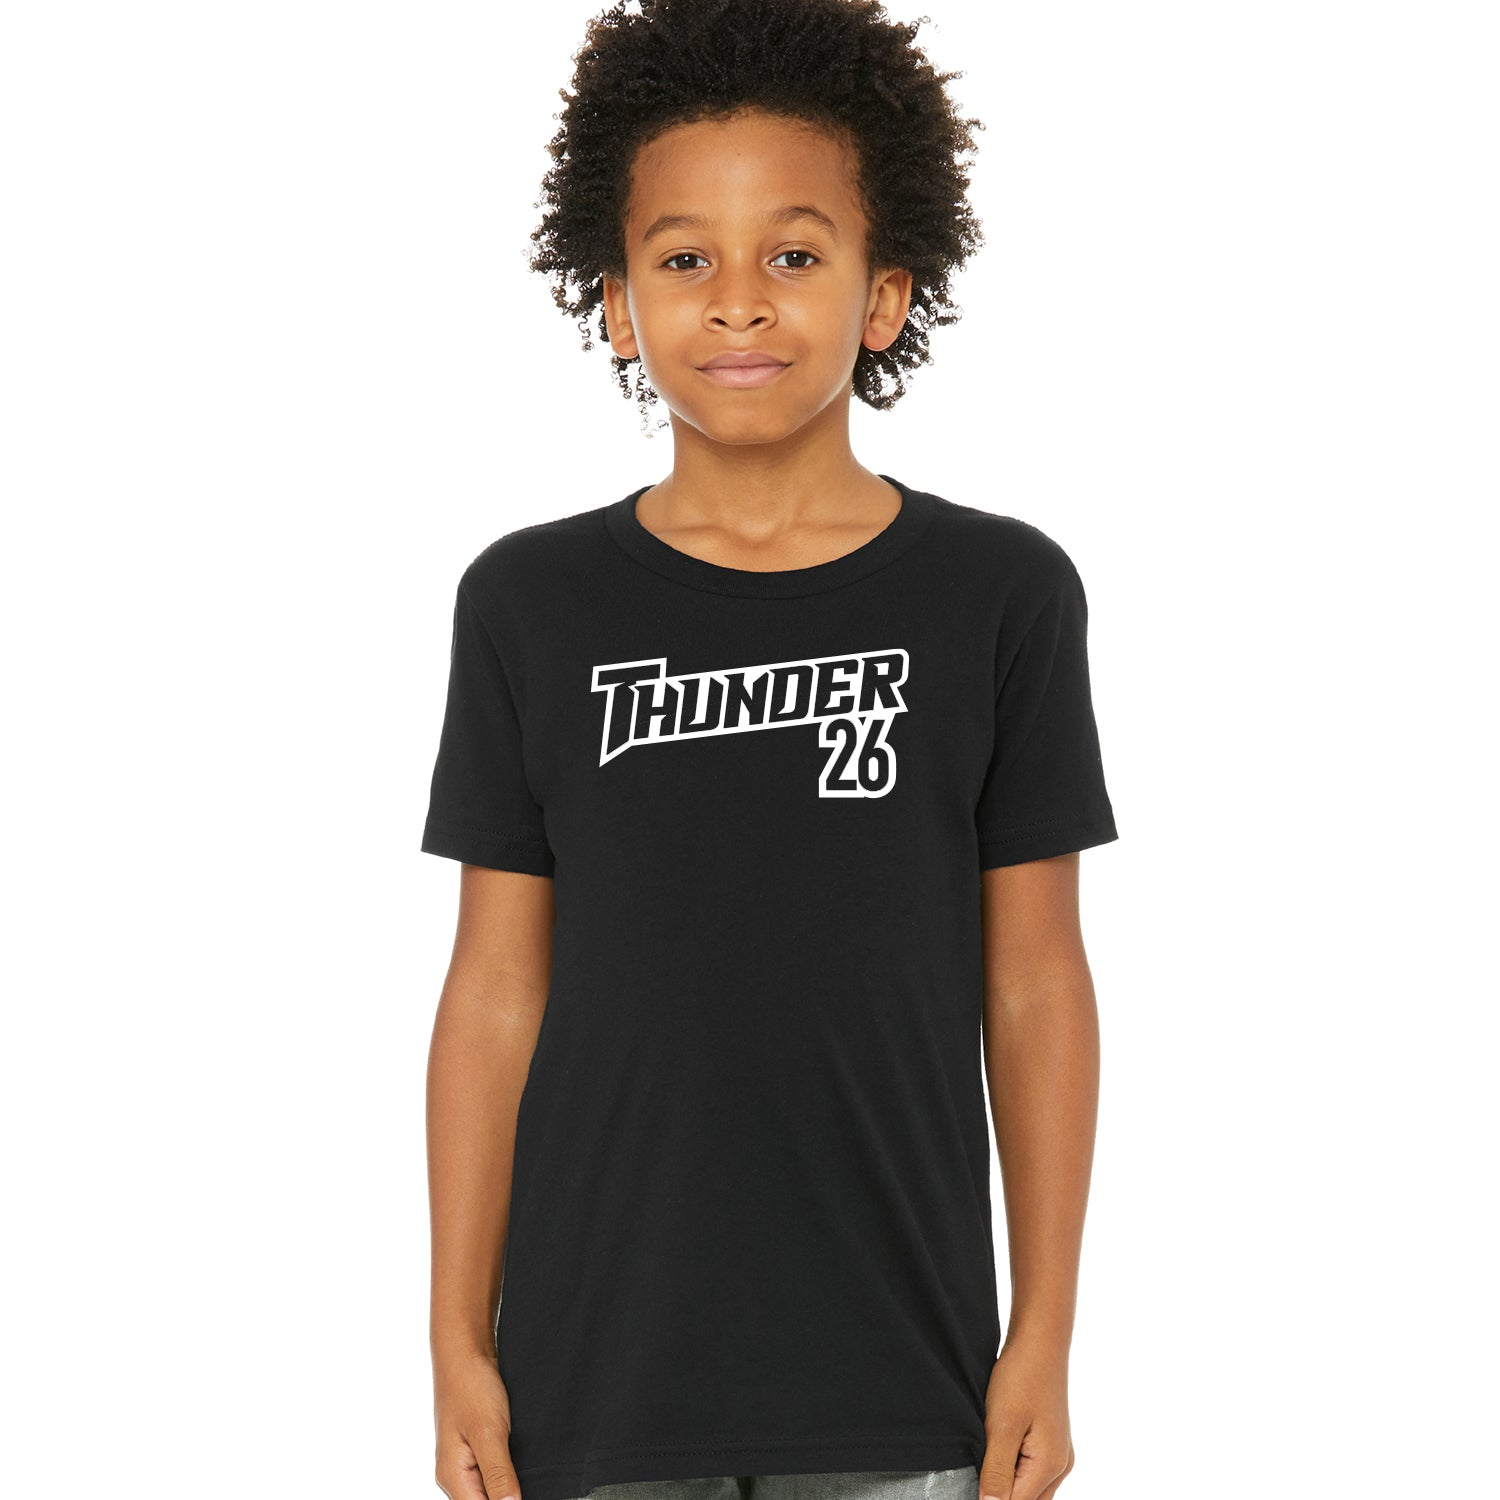 Youth Thunder Tee with players number